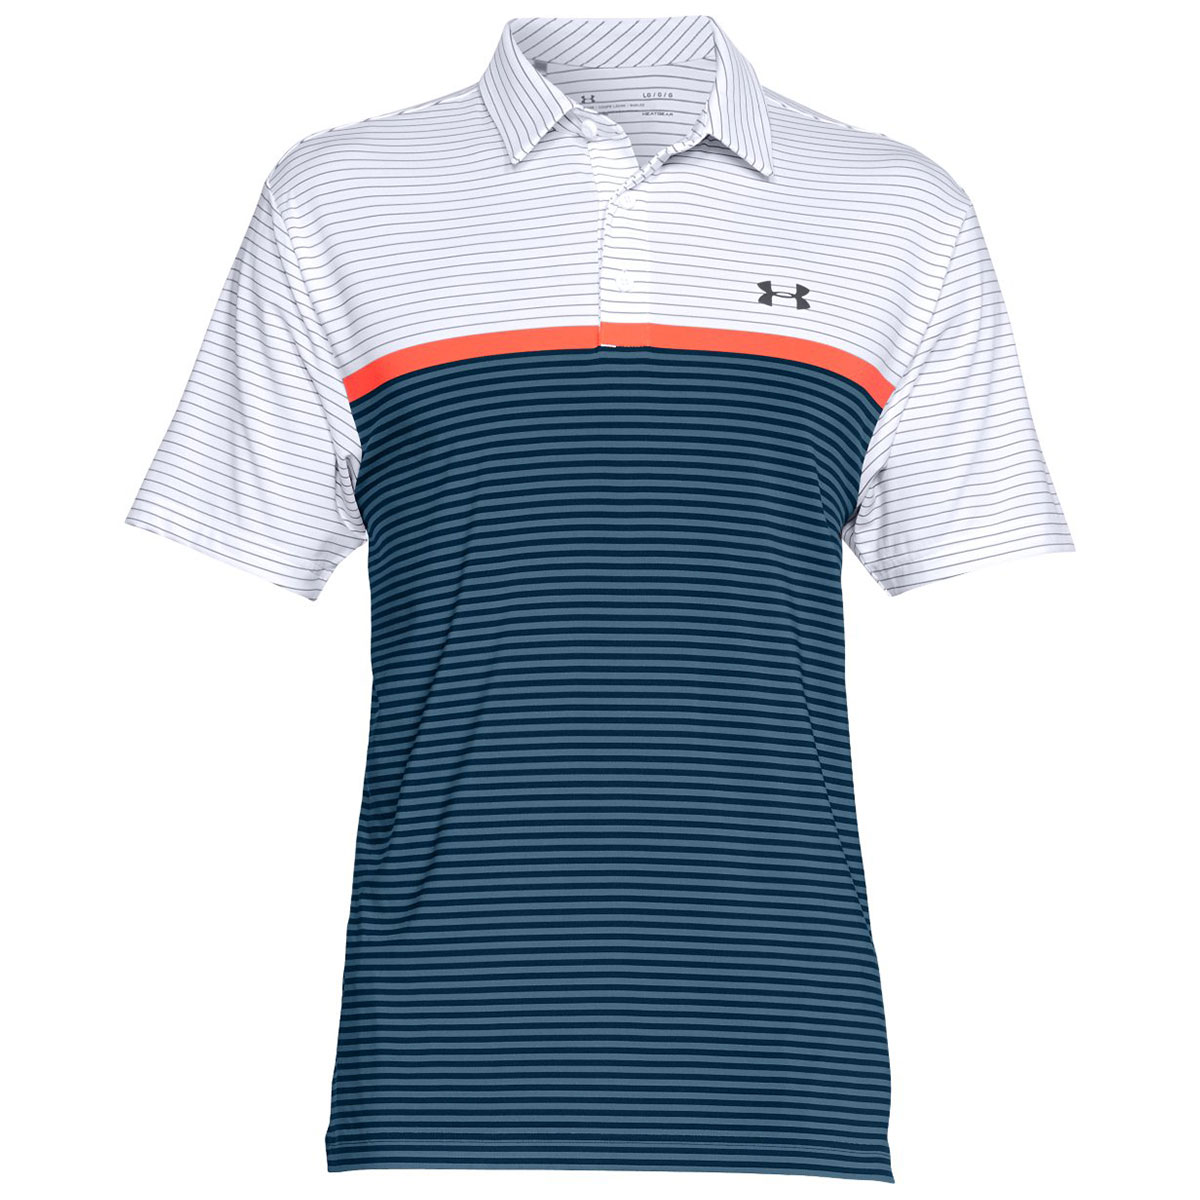 Under-Armour-Mens-UA-Playoff-Performance-Golf-Polo-Shirt-40-OFF-RRP thumbnail 48